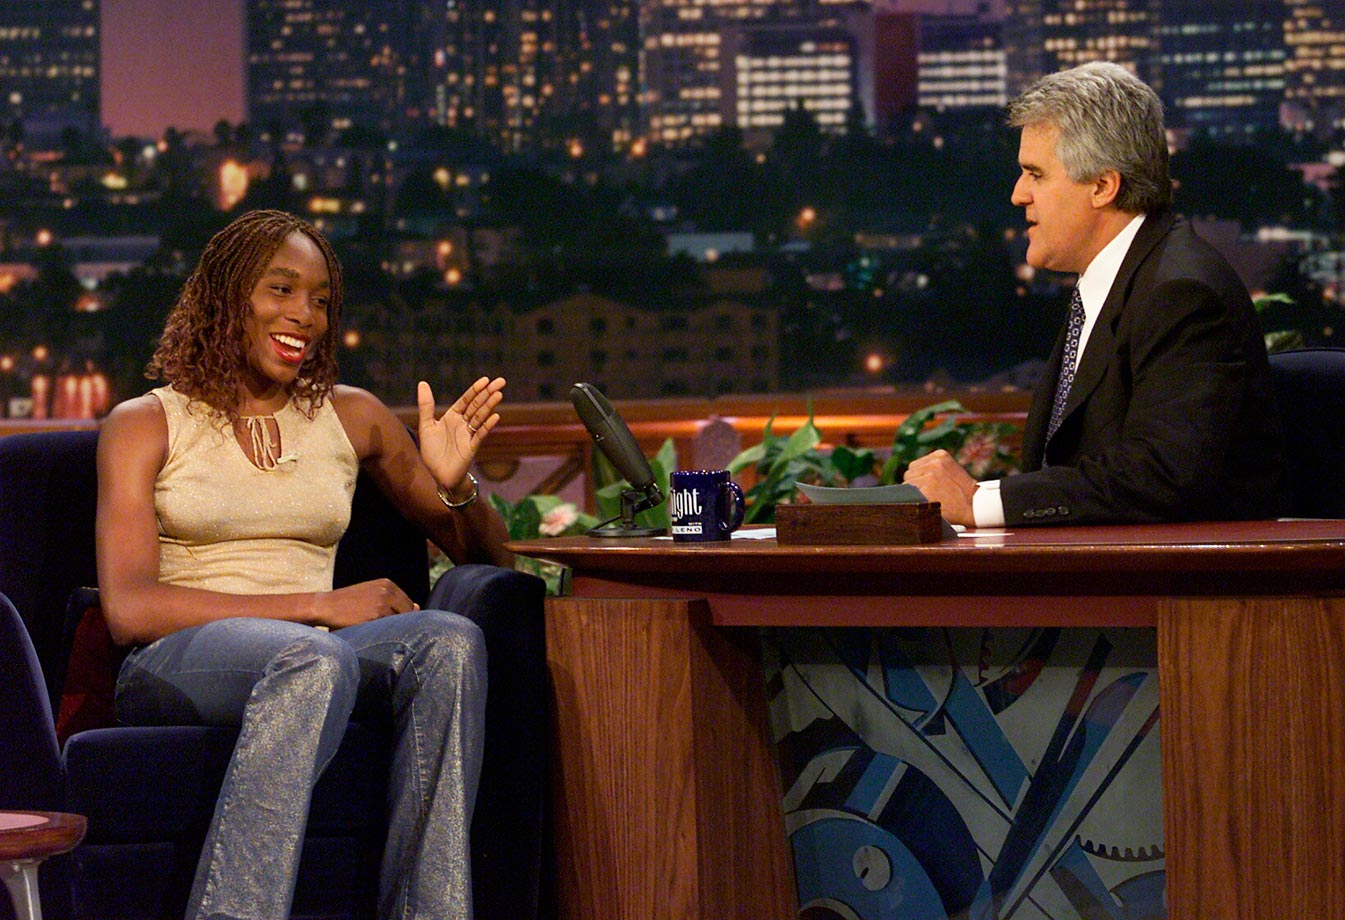 Williams appears on the Tonight Show with Jay Leno. Williams has been a guest on several different TV shows, including Sesame Street, Punk'd and a number of talk shows.